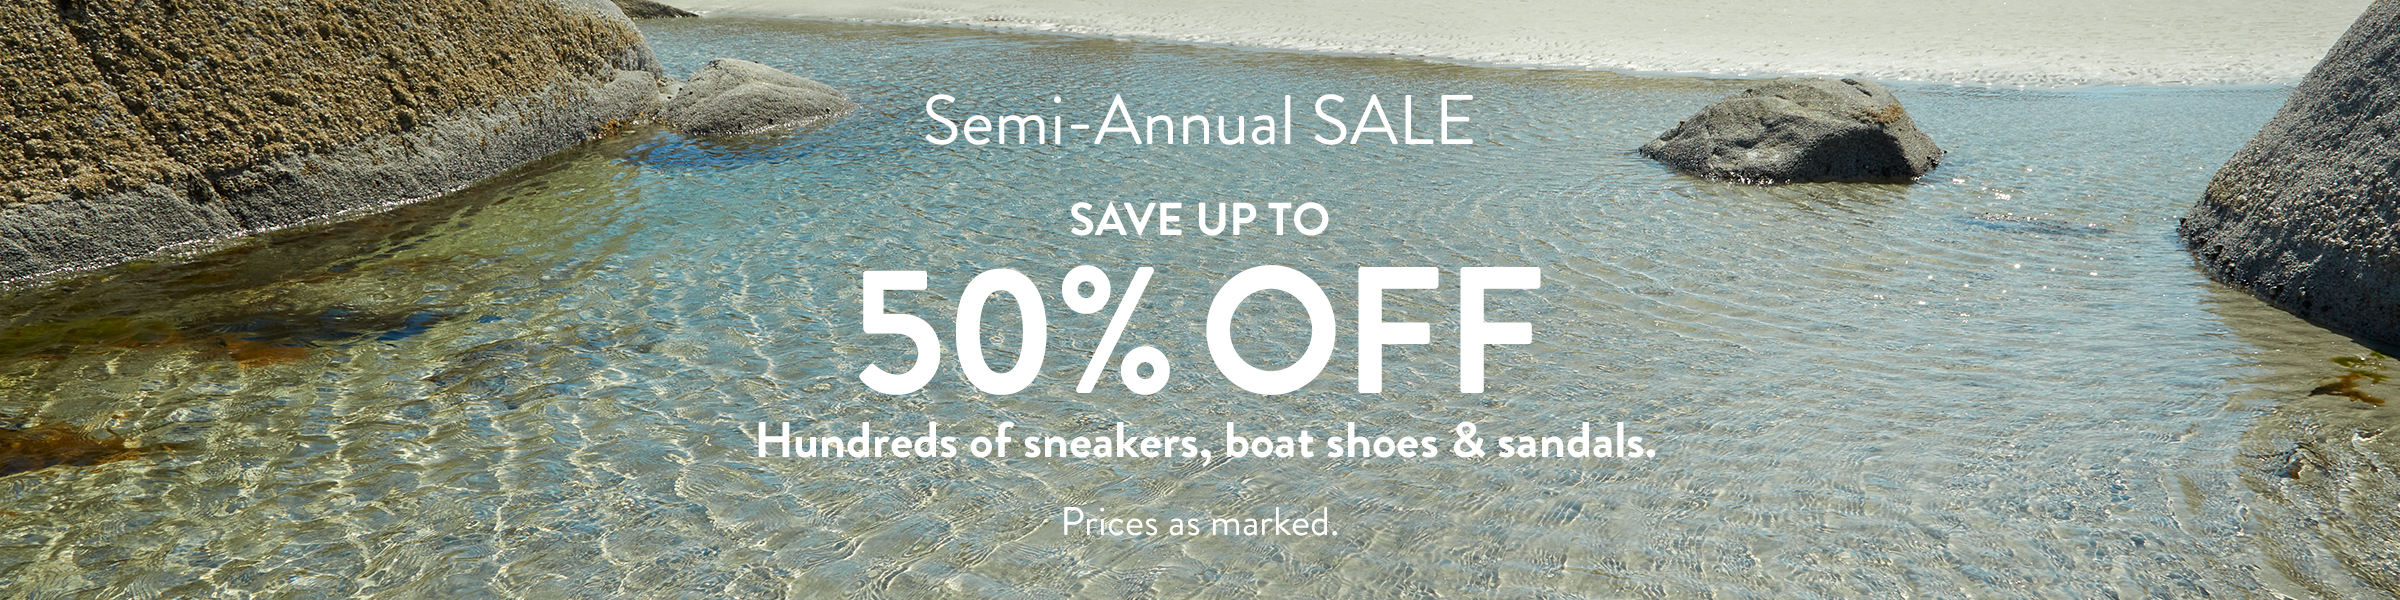 Semi-Annual Sale Save up to 50% Off. Hundreds of sneakers, boat shoes, & sandals.